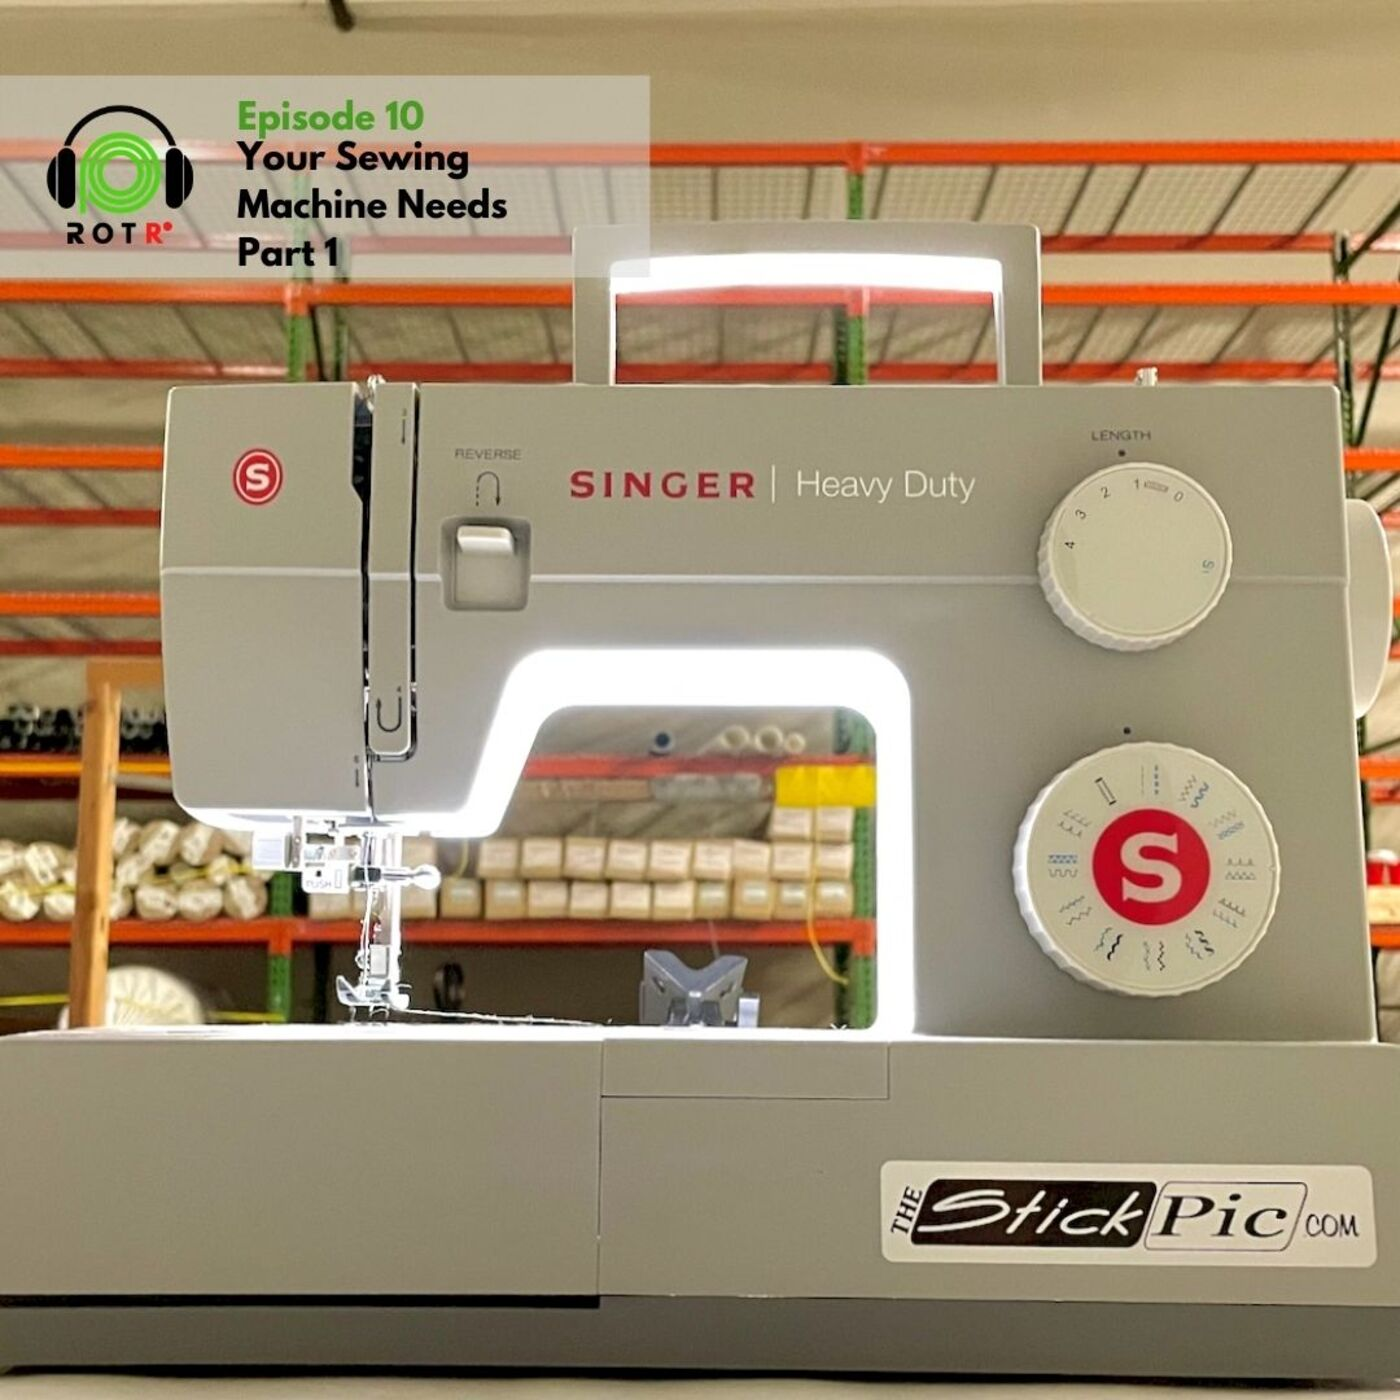 Your Sewing Machine Needs